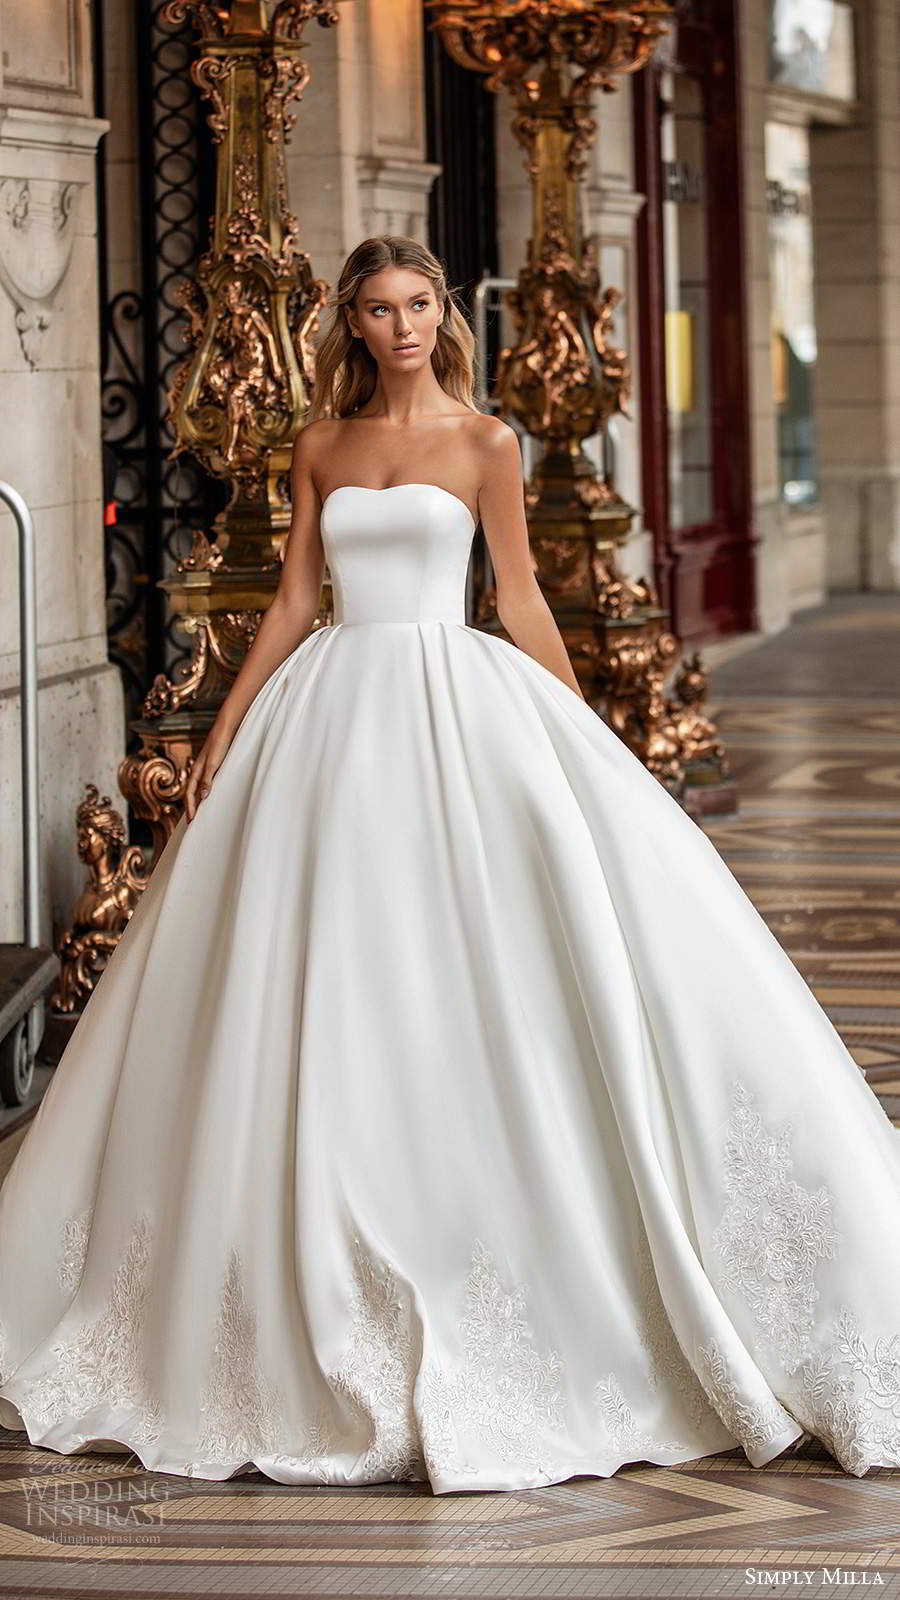 simply milla nova 2020 bridal strapless semi sweetheart clean minimal a line ball gown wedding dress chapel train (2) mv